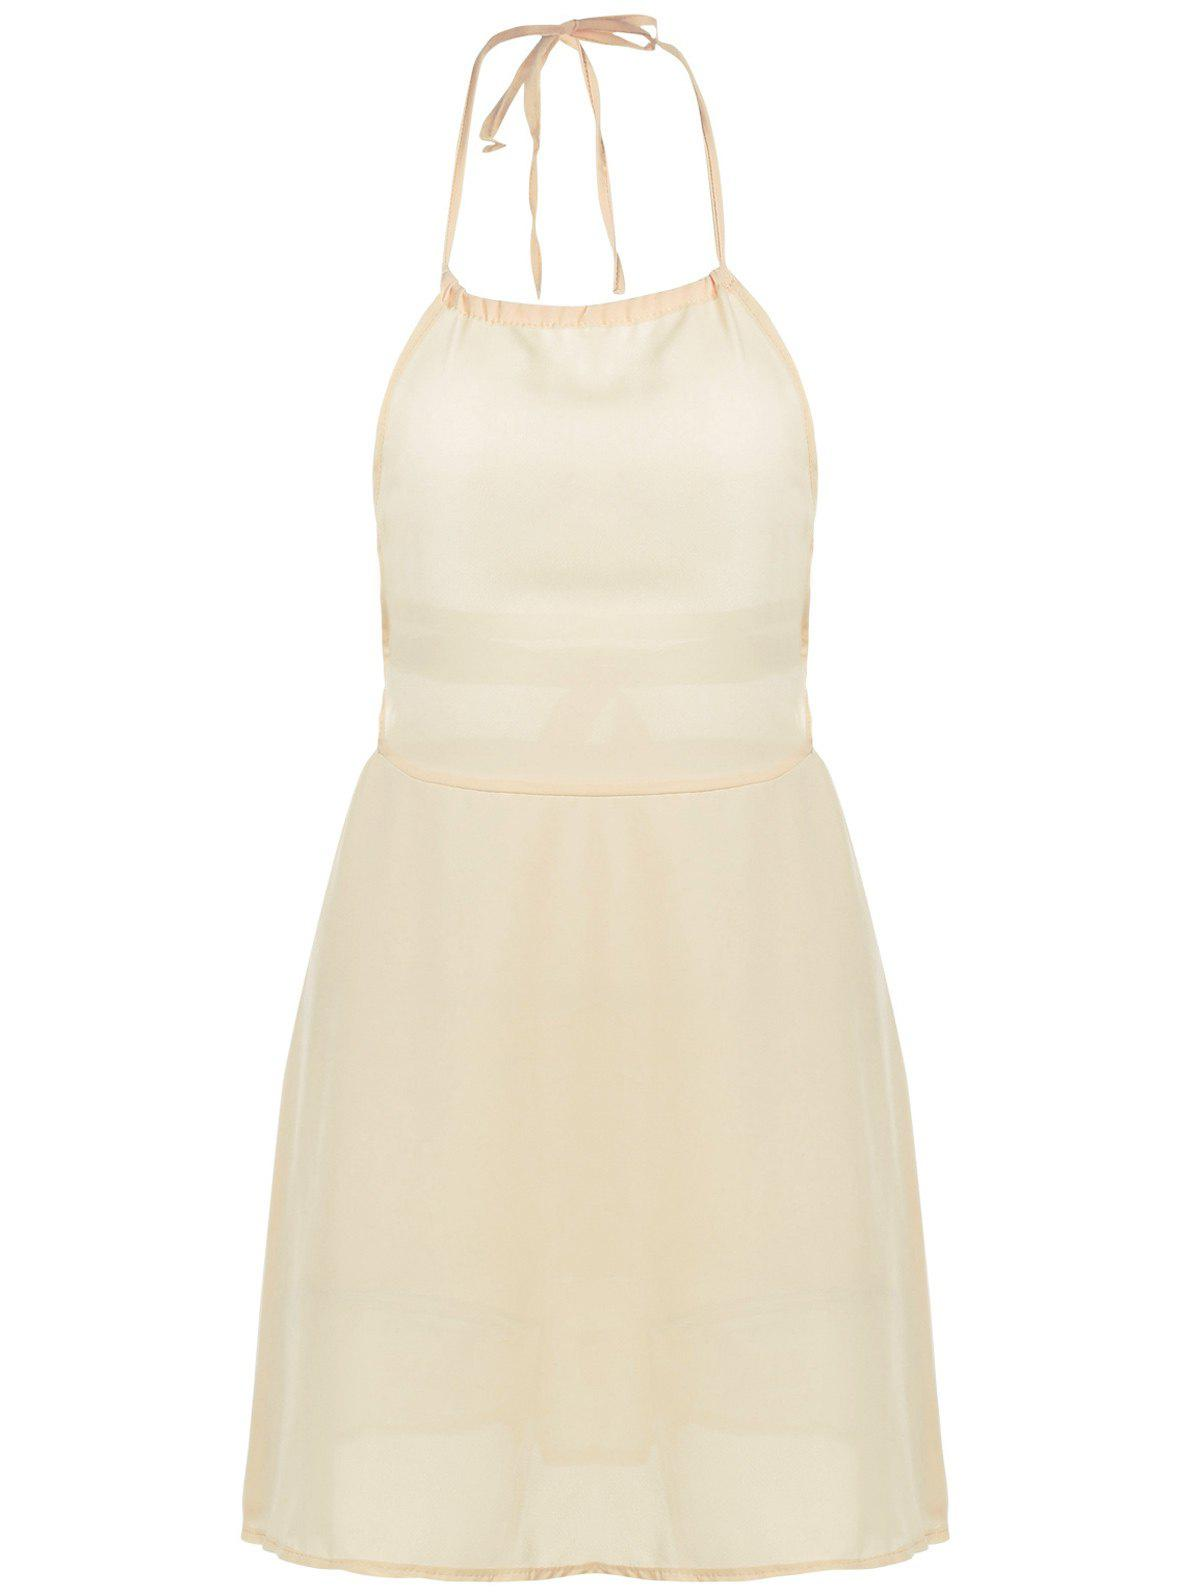 Trendy Solid Color Sleeveless Backless Halter Dress For Women - LIGHT YELLOW S